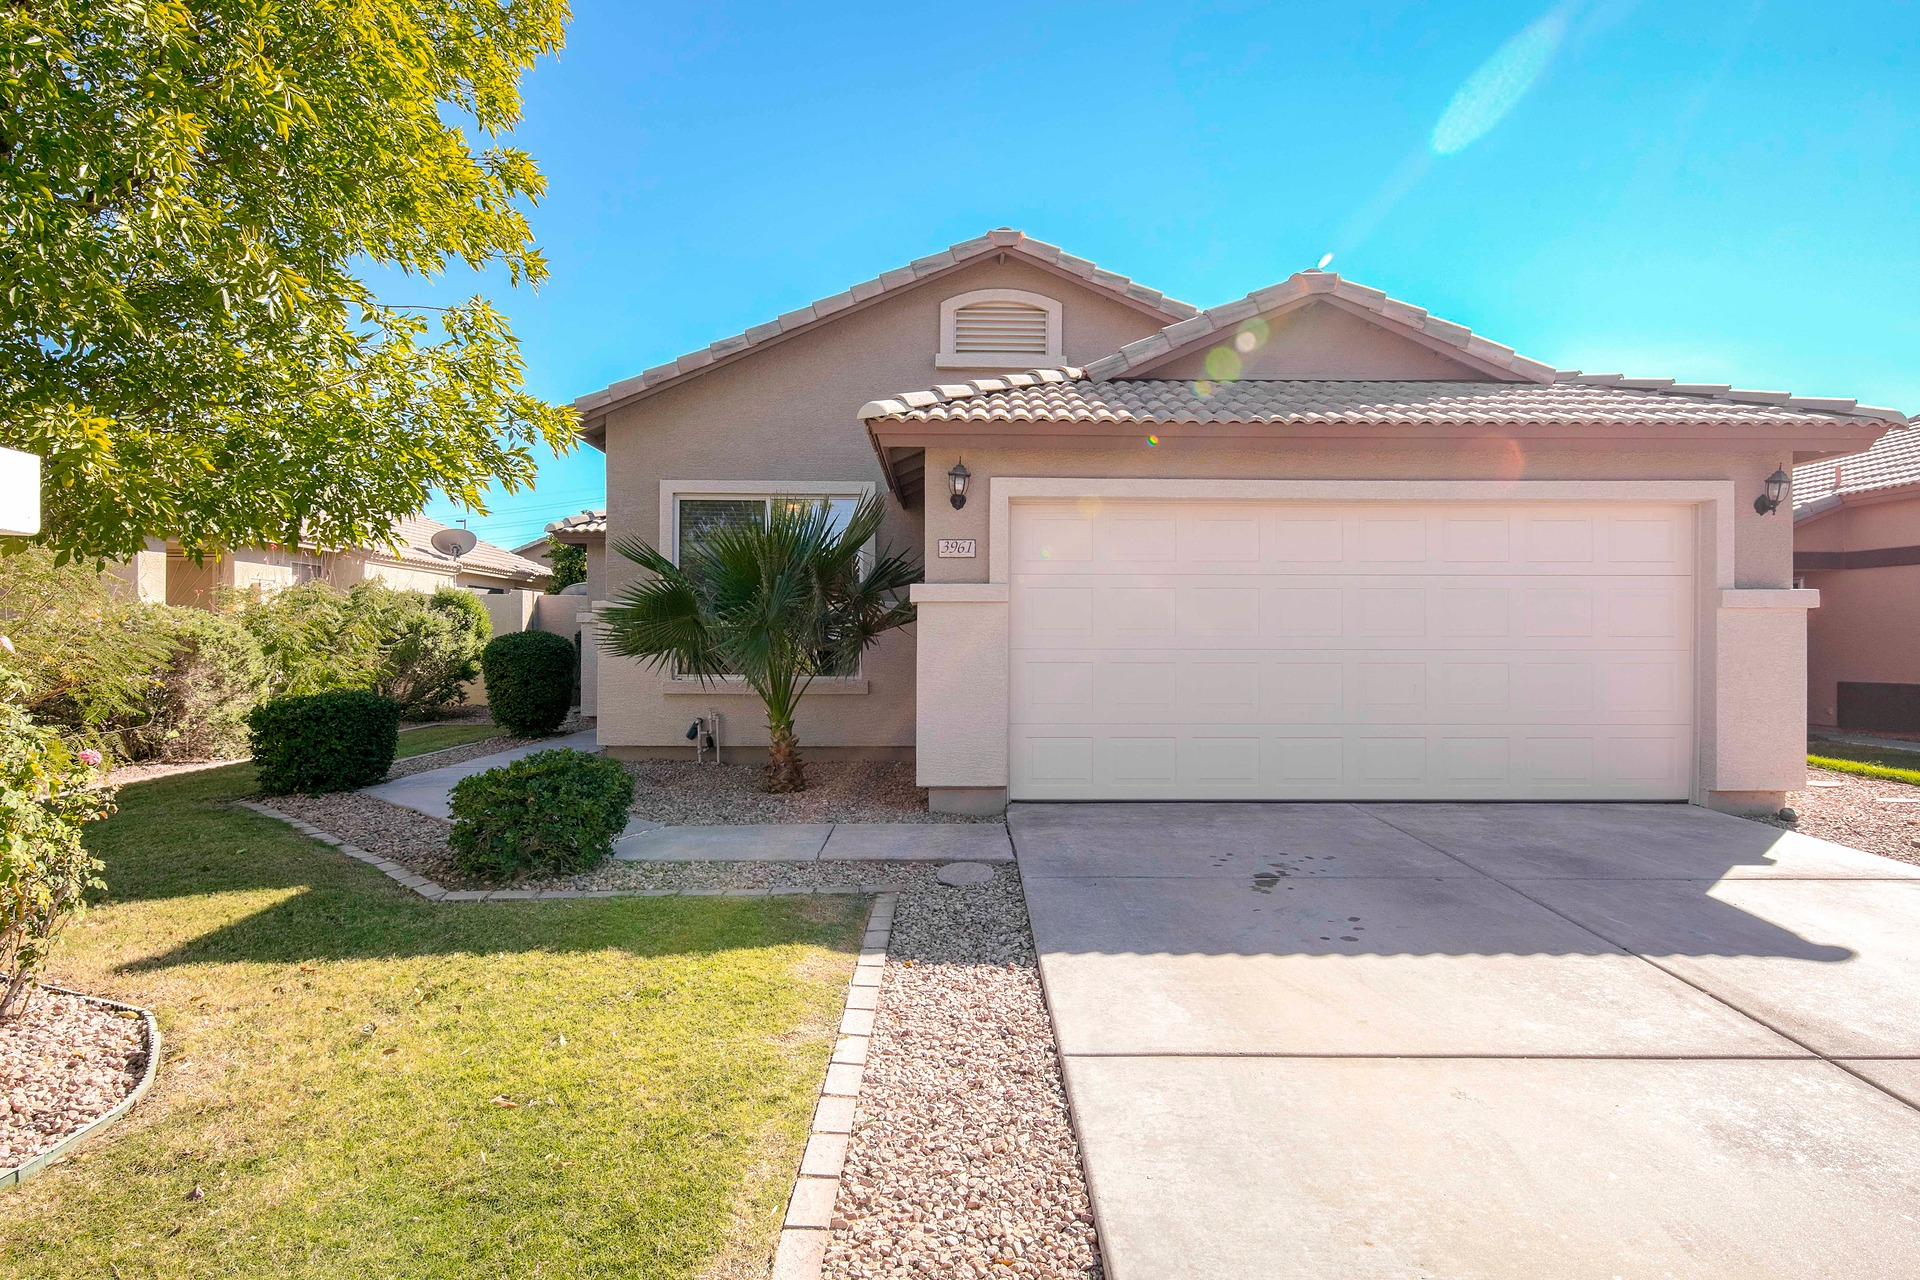 3961 E Olive Ave, Gilbert, AZ 85234 - El Dorado at the Highland | Amy Jones Group